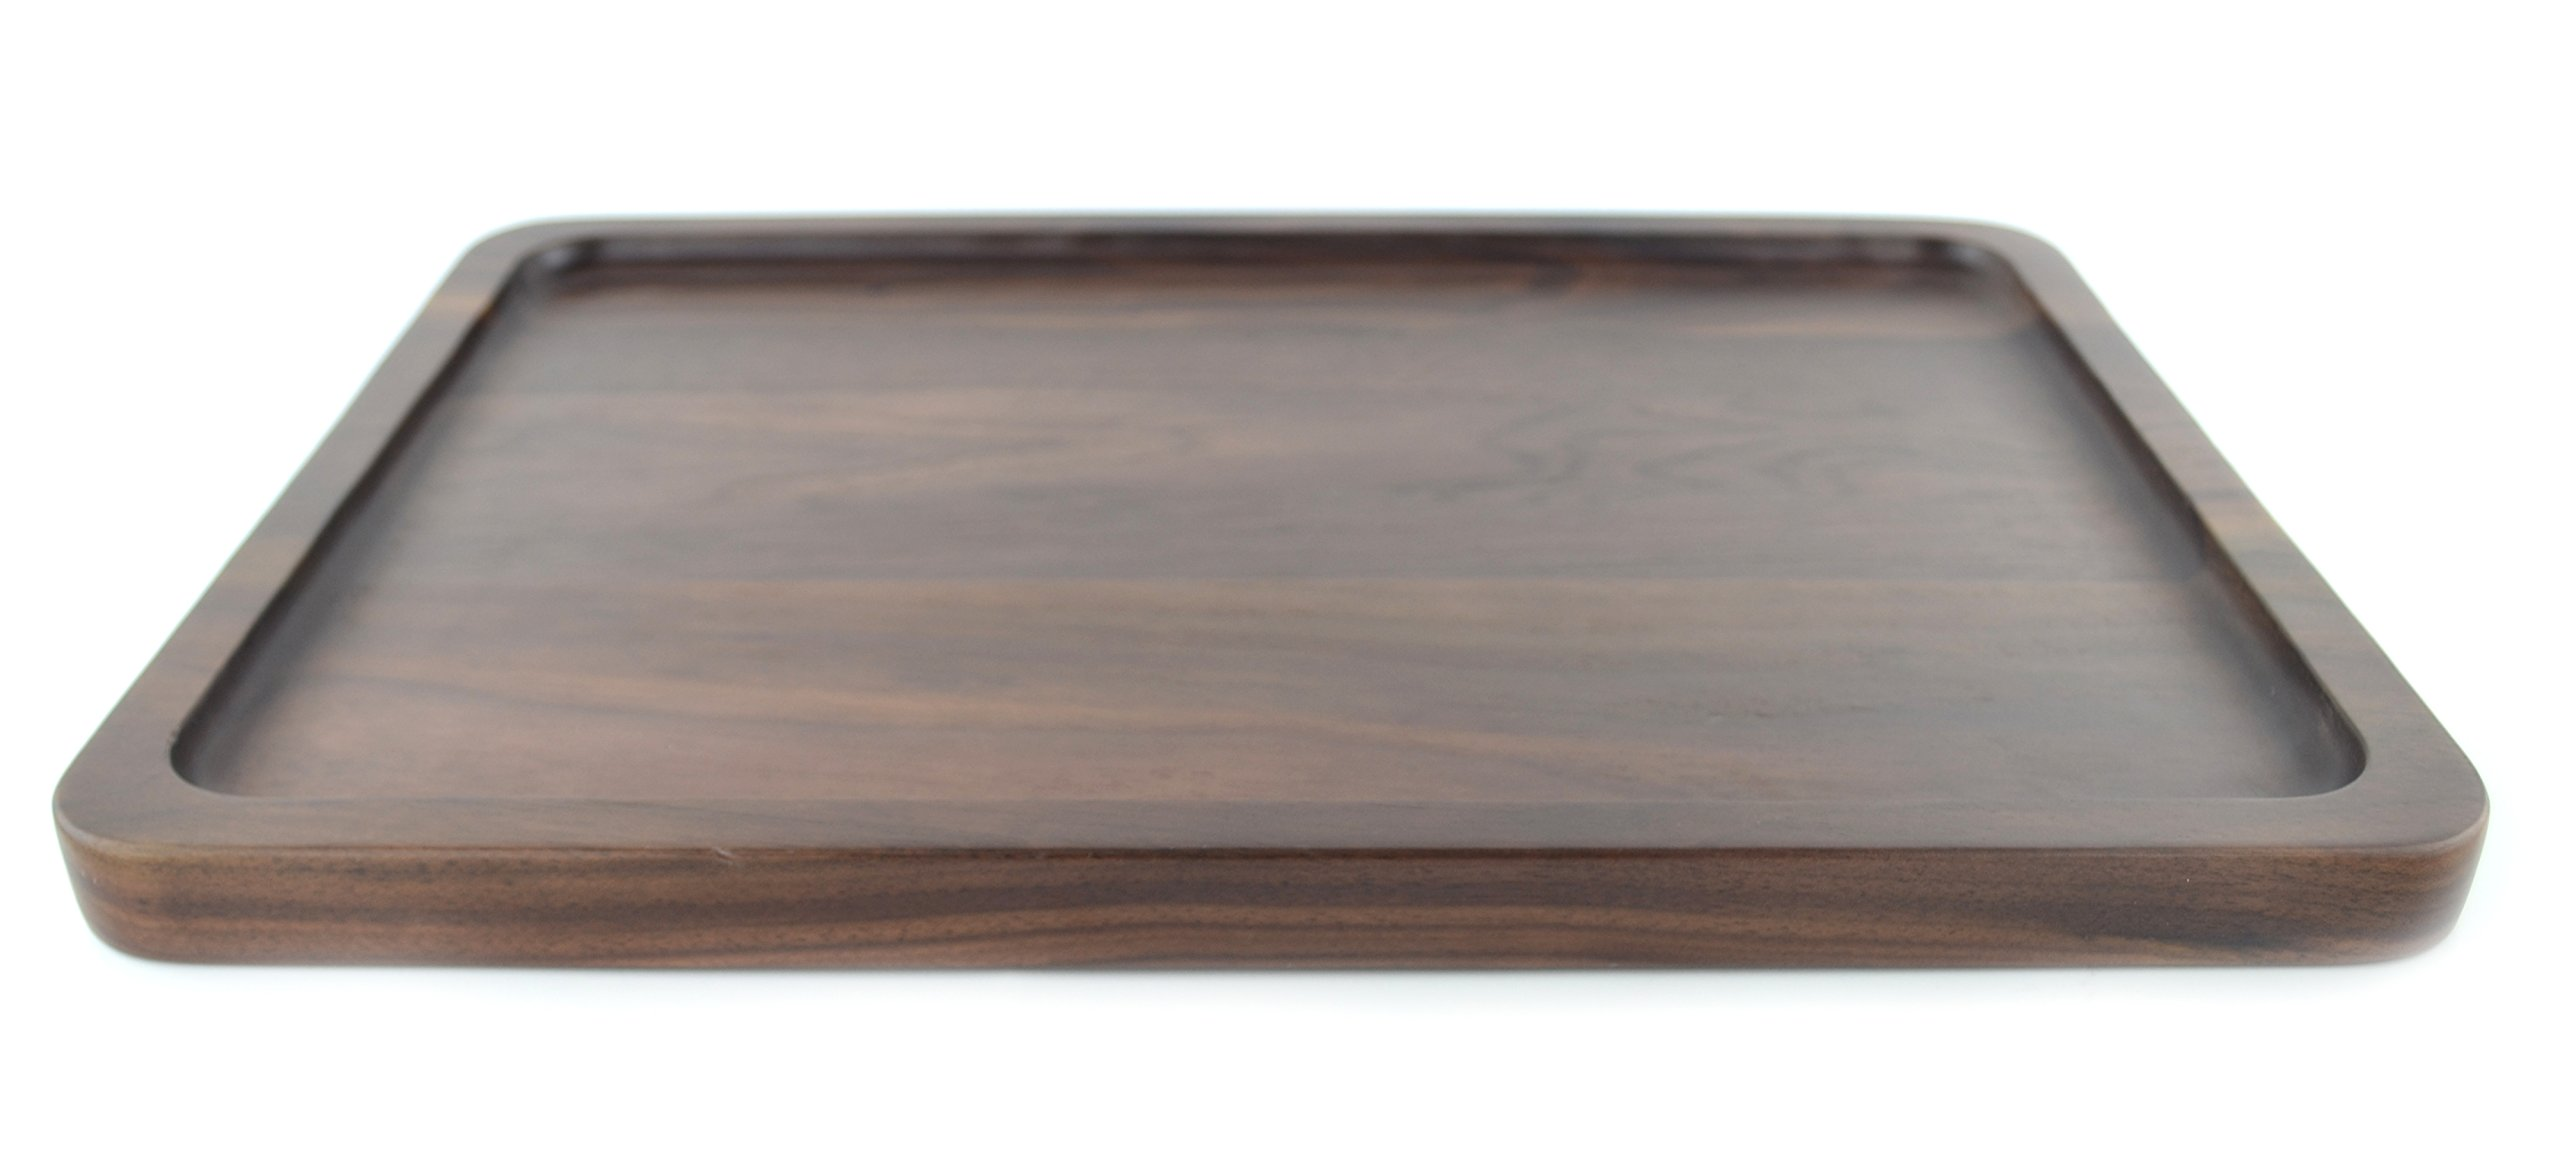 Samyo Black Walnut Solid Wood Rectangular Tableware Serving Tray Handcrafted Decorative Trays Food Tray Serving Platters with gripper for Coffee Wine Cocktail Fruit Meals (Large Size) by SAMYO (Image #2)